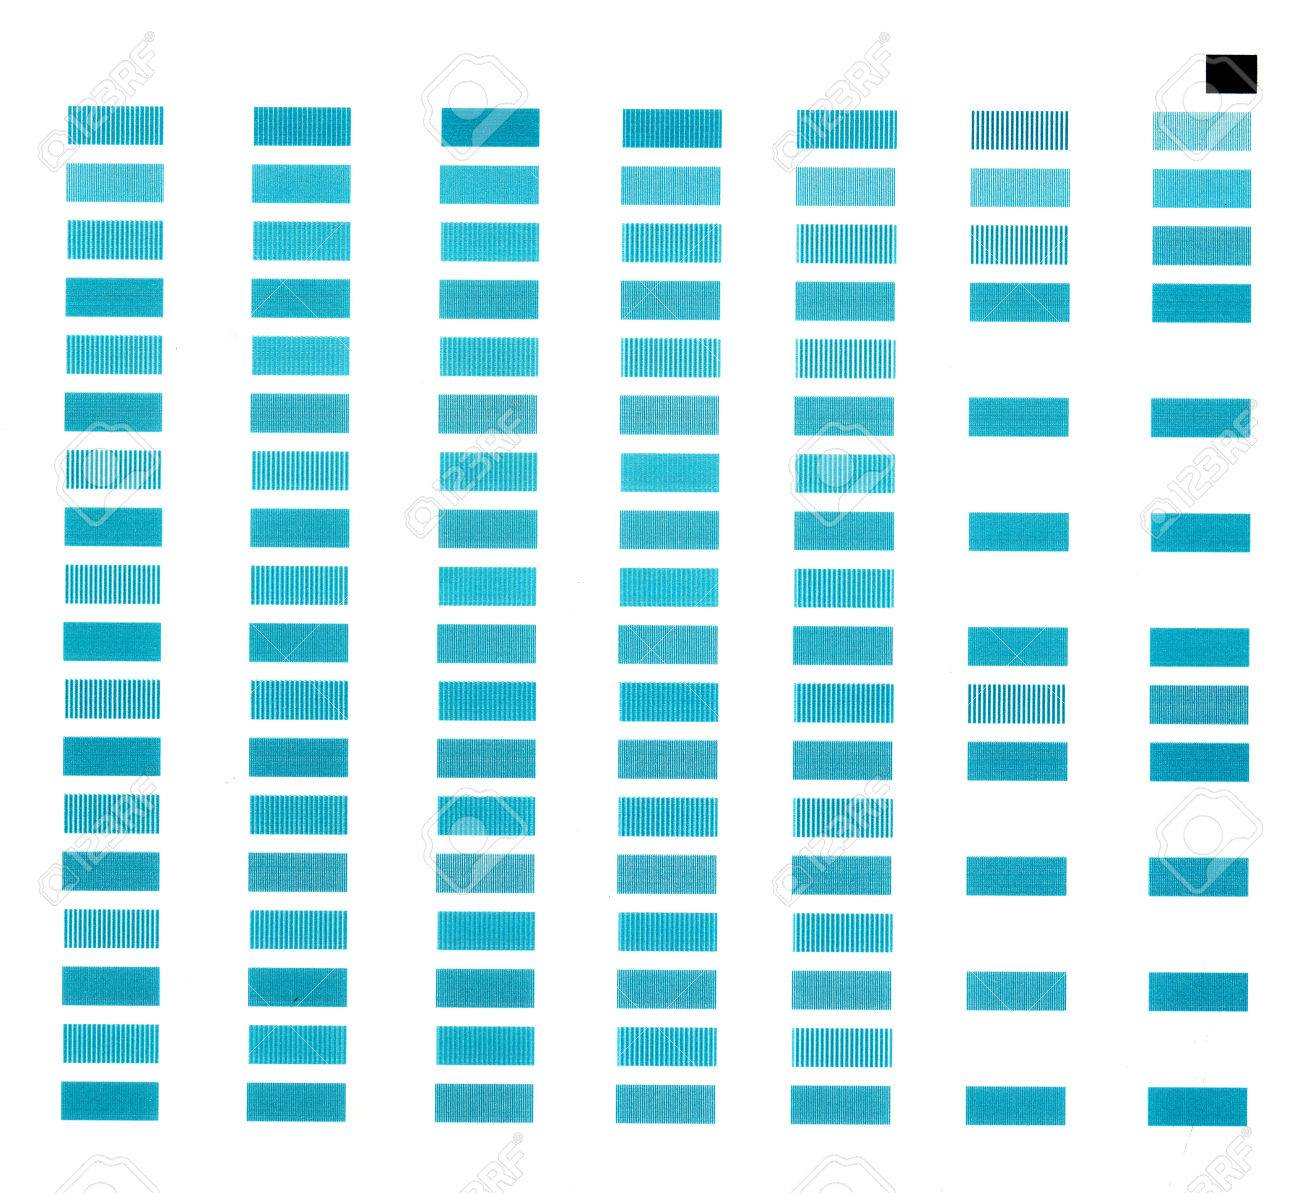 Color printing test - Simple Test Print Page With Rows Of Rectangles Of Blue Color Stock Photo 29655013